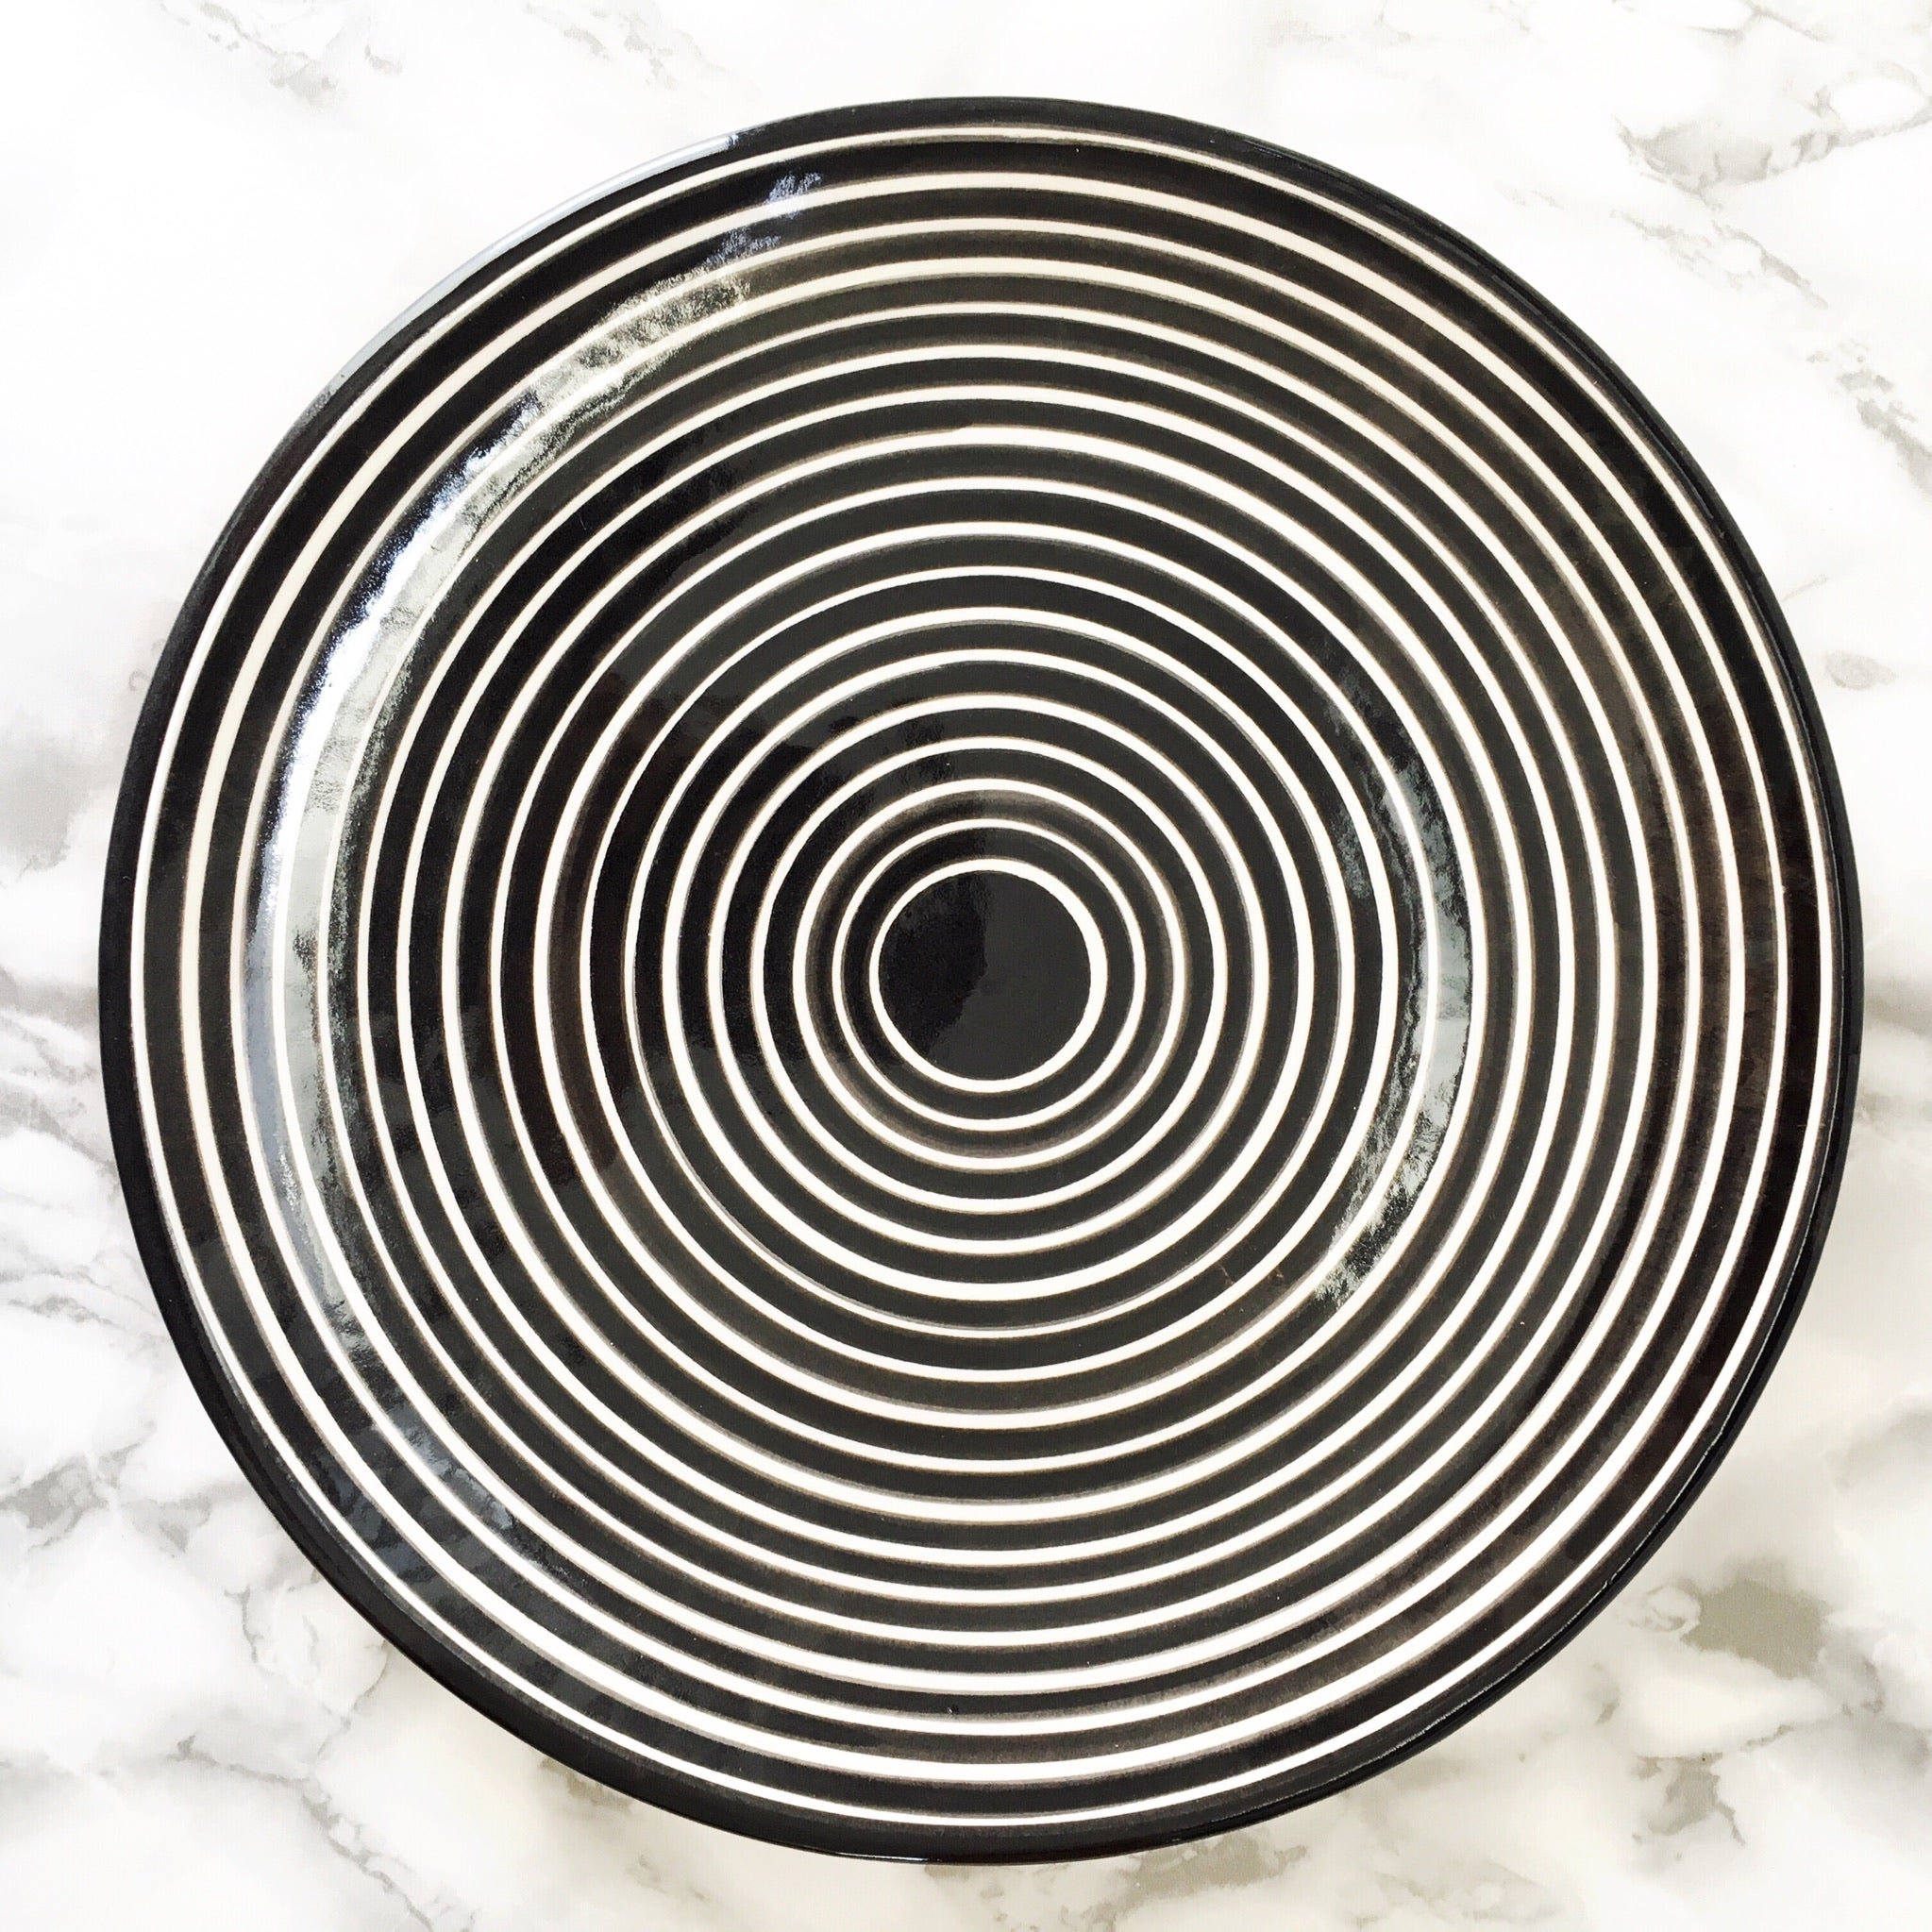 Casa Cubista Graphic Tableware - Large Striped Serving Platter